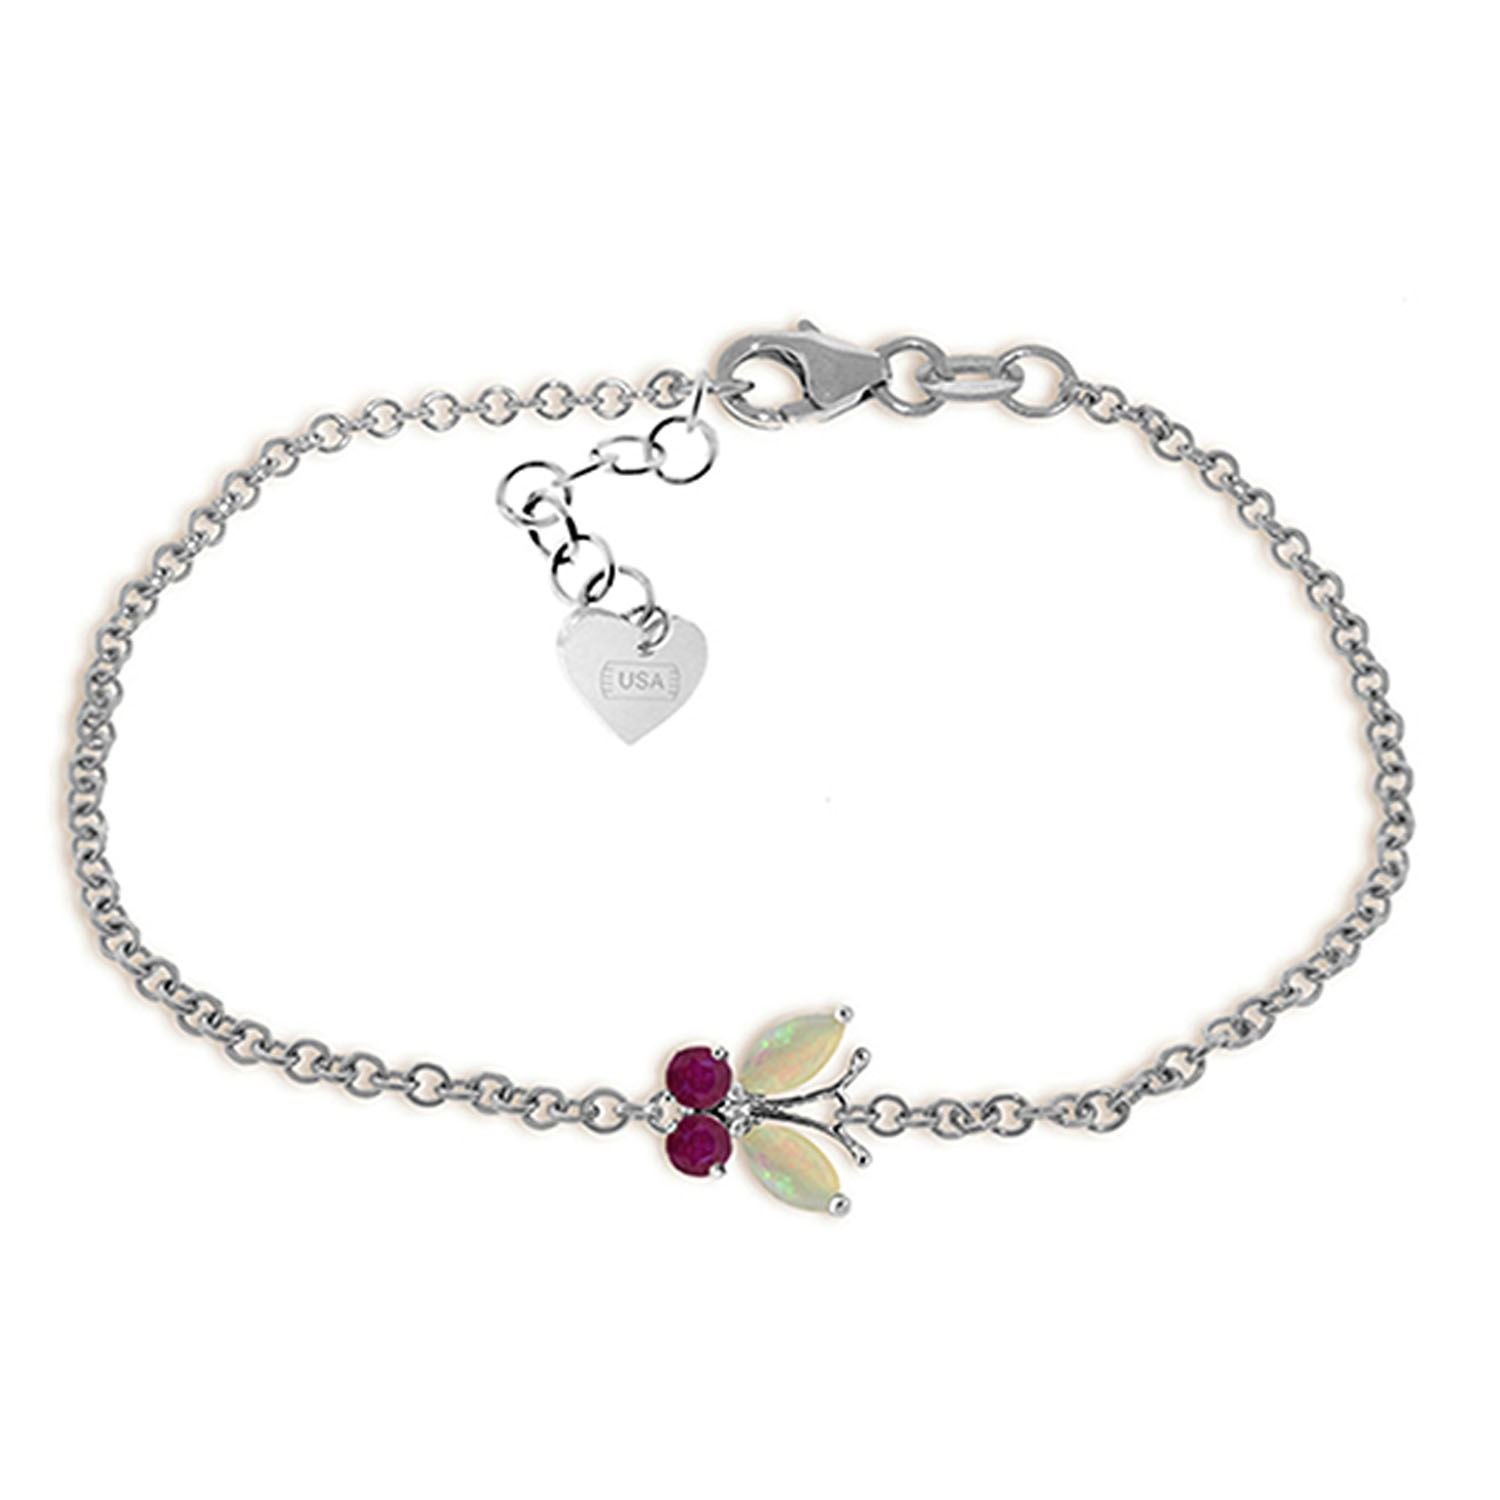 ALARRI 0.6 Carat 14K Solid White Gold Coming Down Love Opal Ruby Bracelet Size 8.5 Inch Length